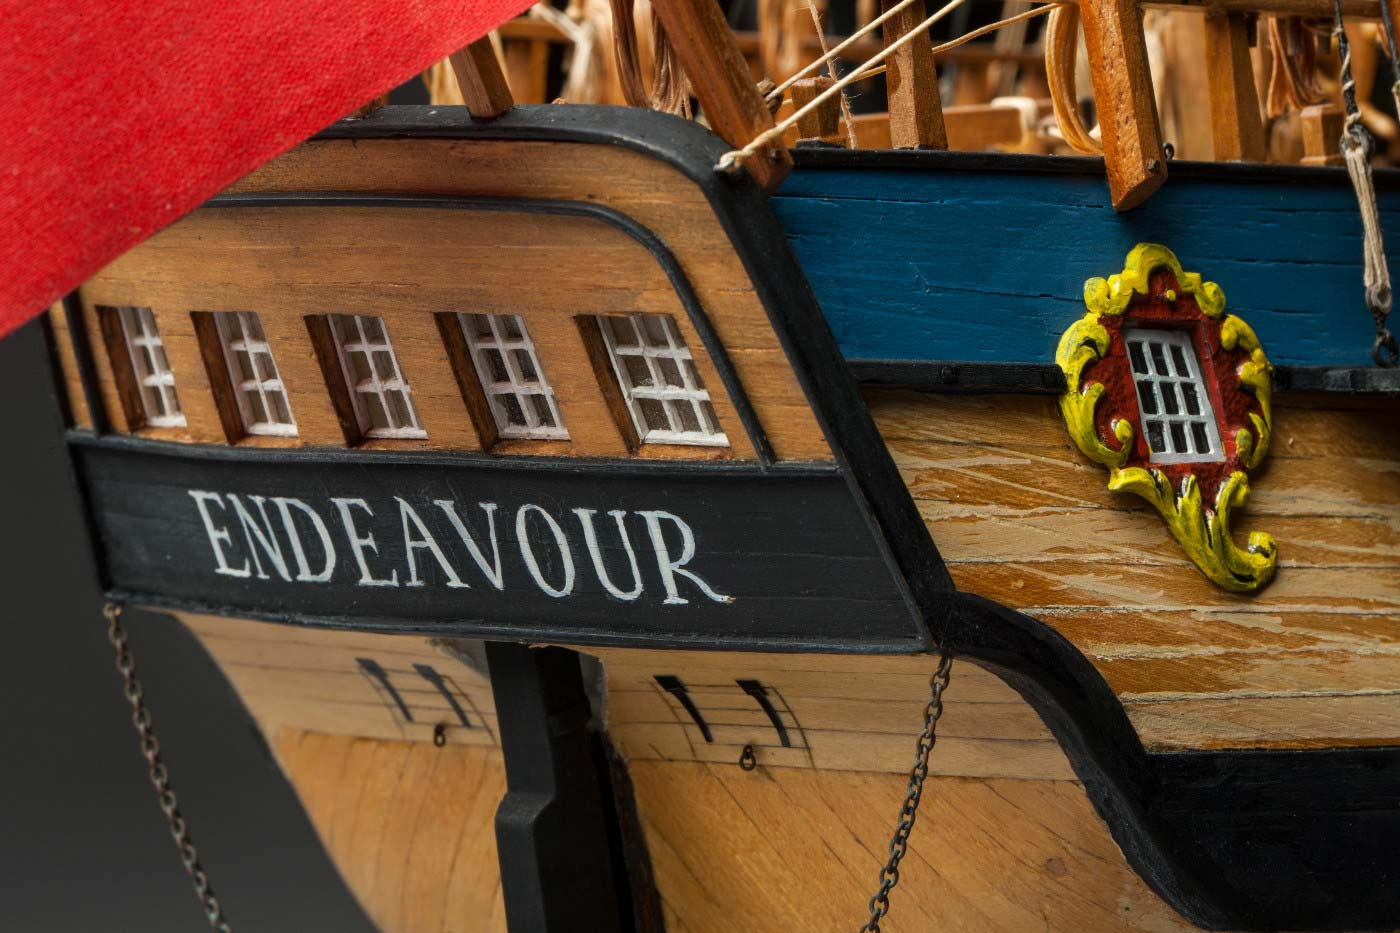 Detail image showing the back of a model wooden sailing ship. 'Endeavour' is painted under a series of five windows. - click to view larger image